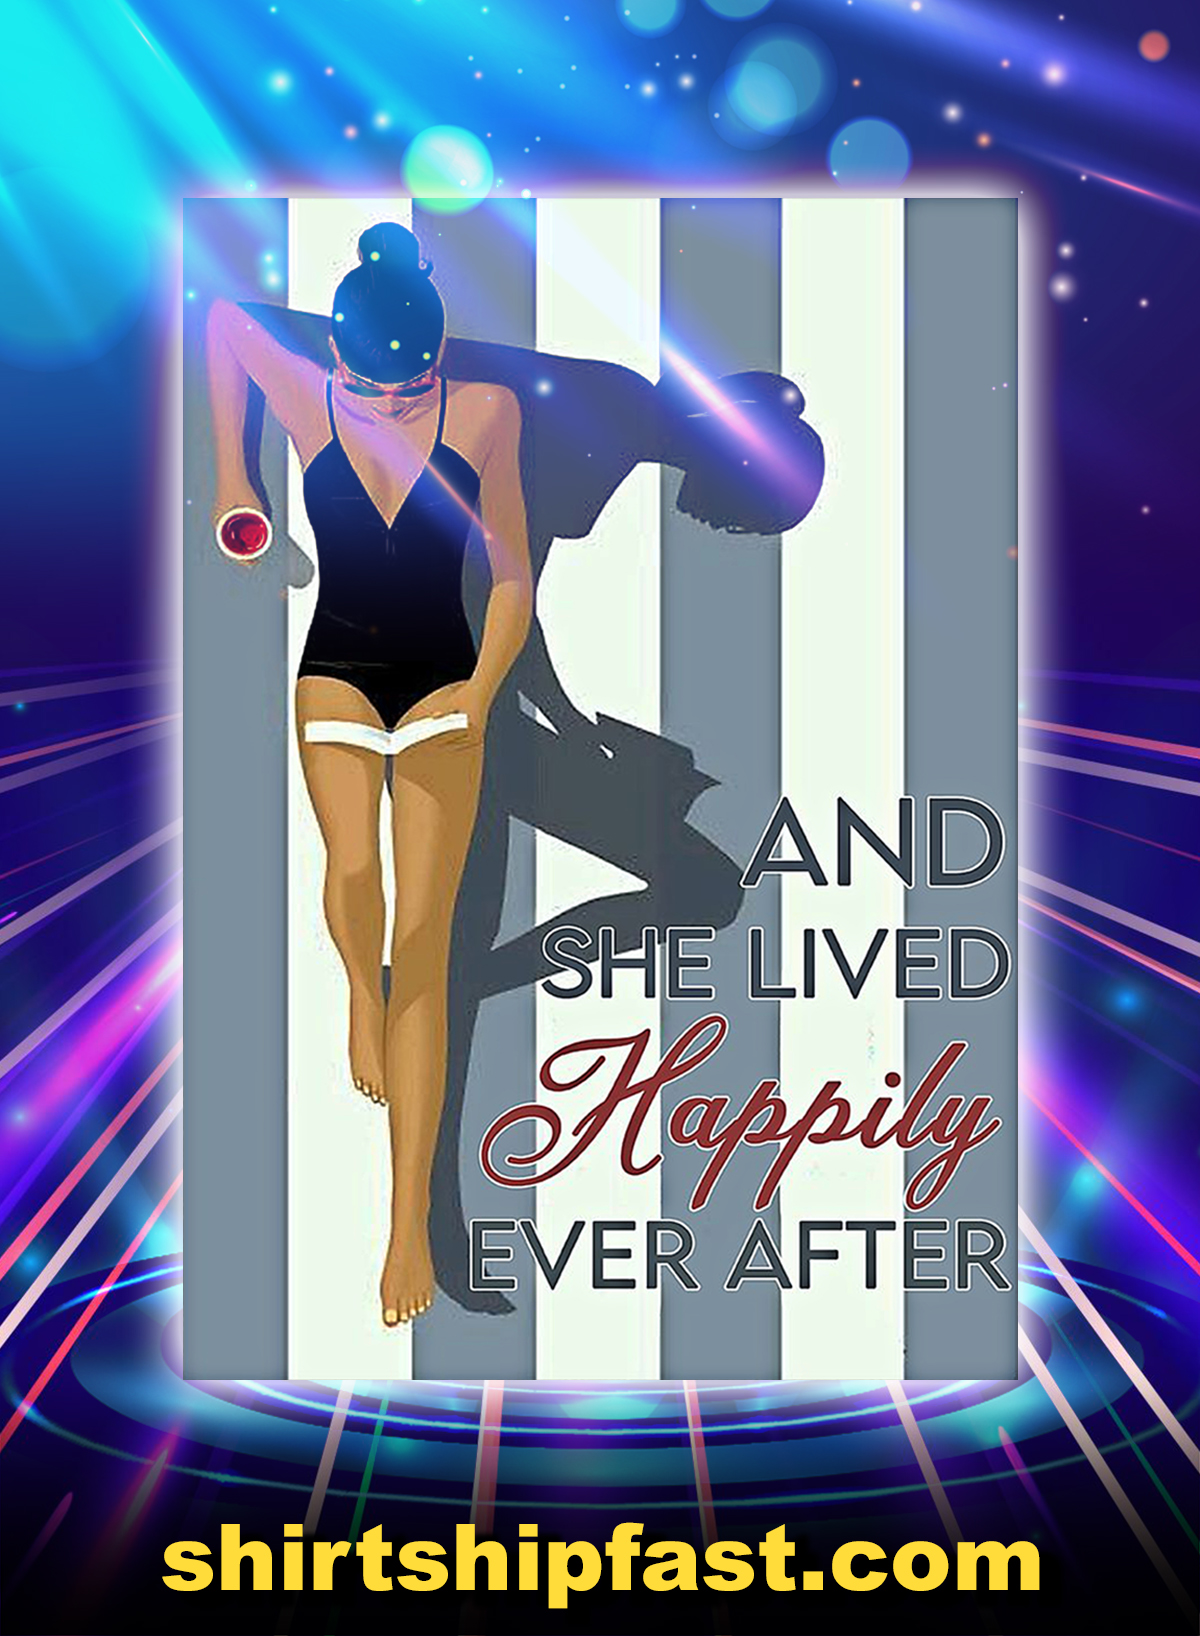 Pool girl reading and she lived happily ever after poster - A1